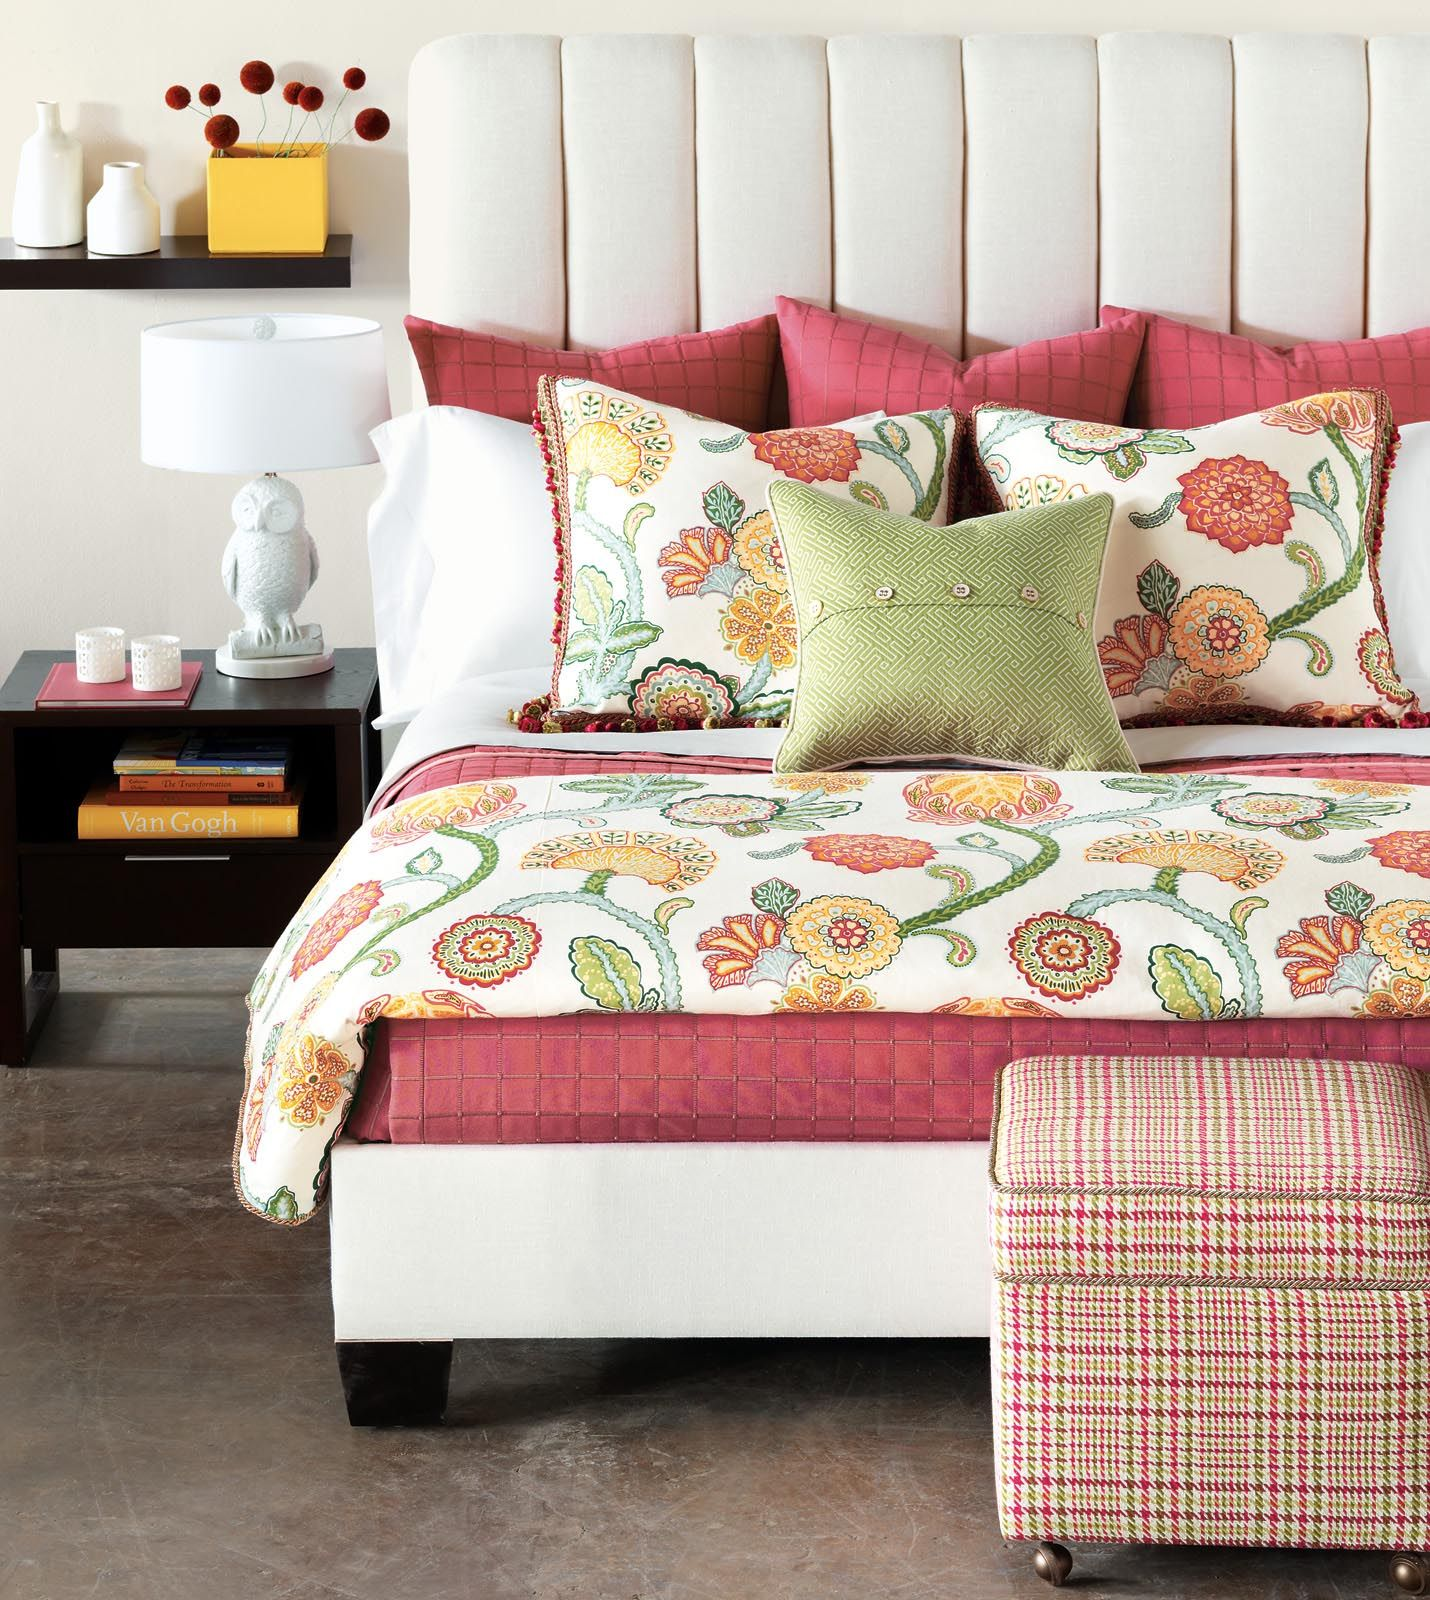 pin hyland comforter butera comforters park luxury collections linens barclay bedding collection bed custom